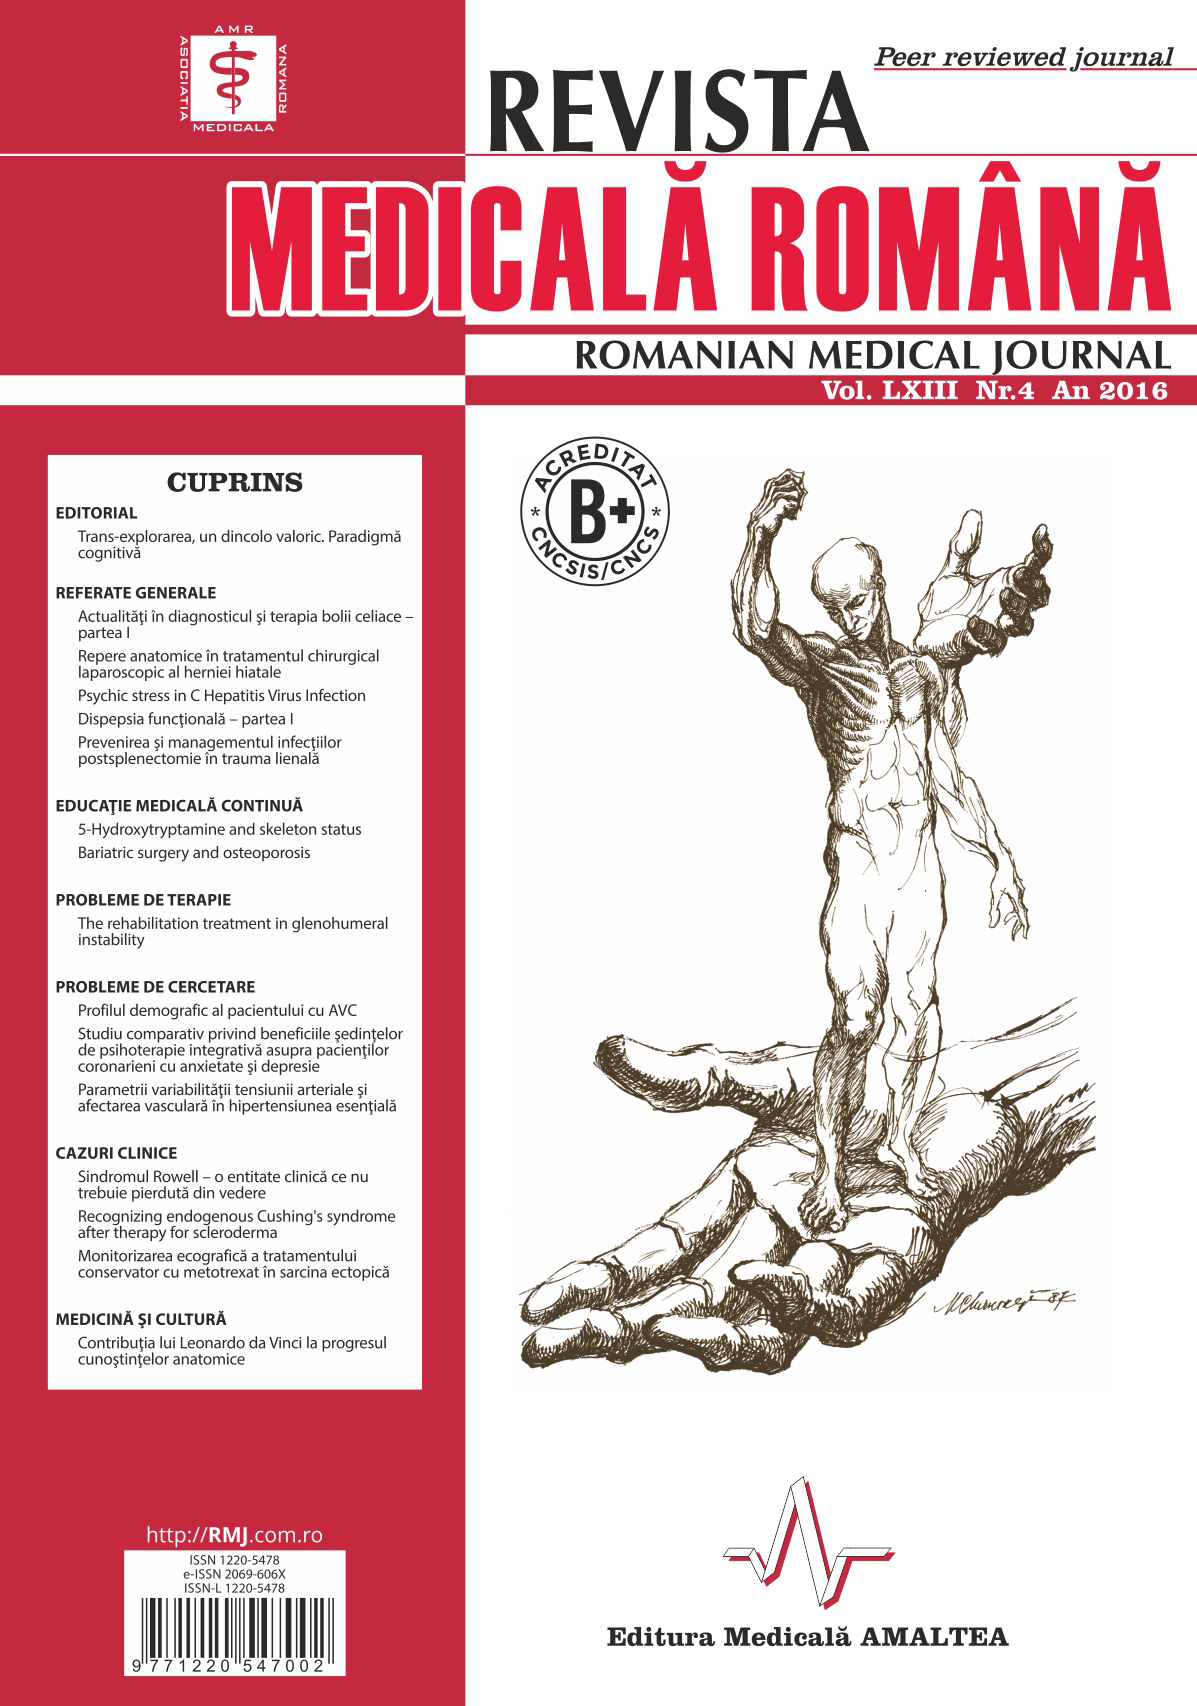 REVISTA MEDICALA ROMANA - Romanian Medical Journal, Vol. LXIII, No. 4, Year 2016